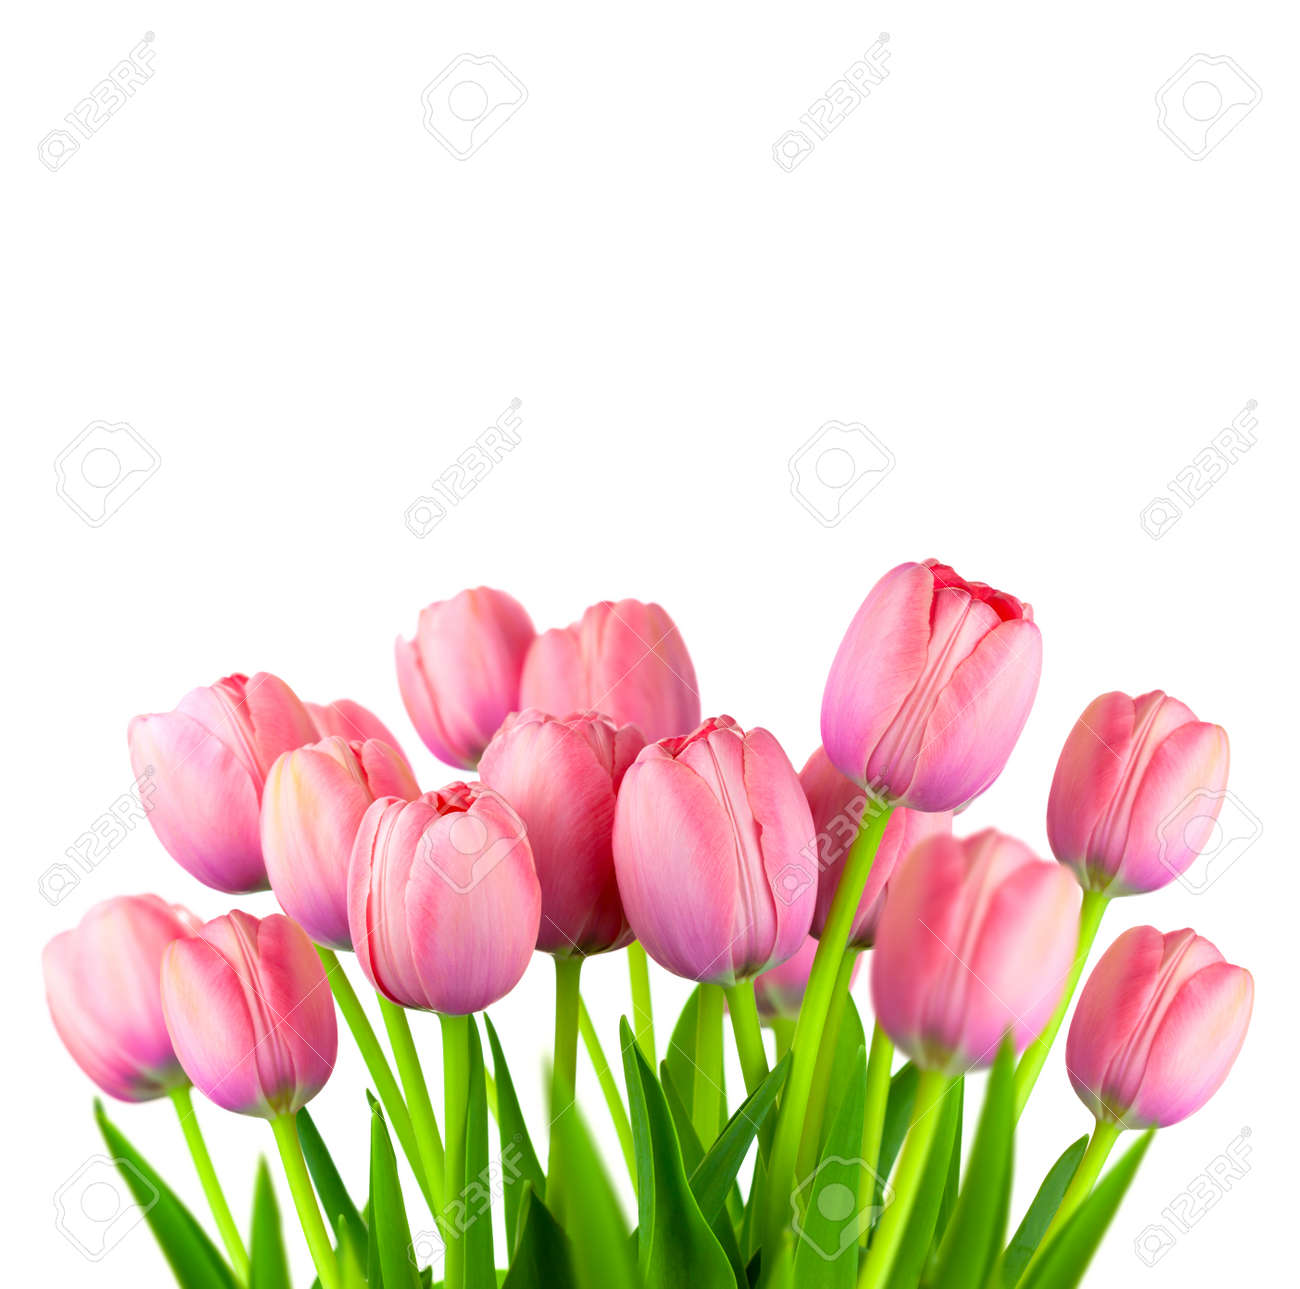 Border Of Fresh Pink Tulips Spring Flowers Bouquet Isolated Stock